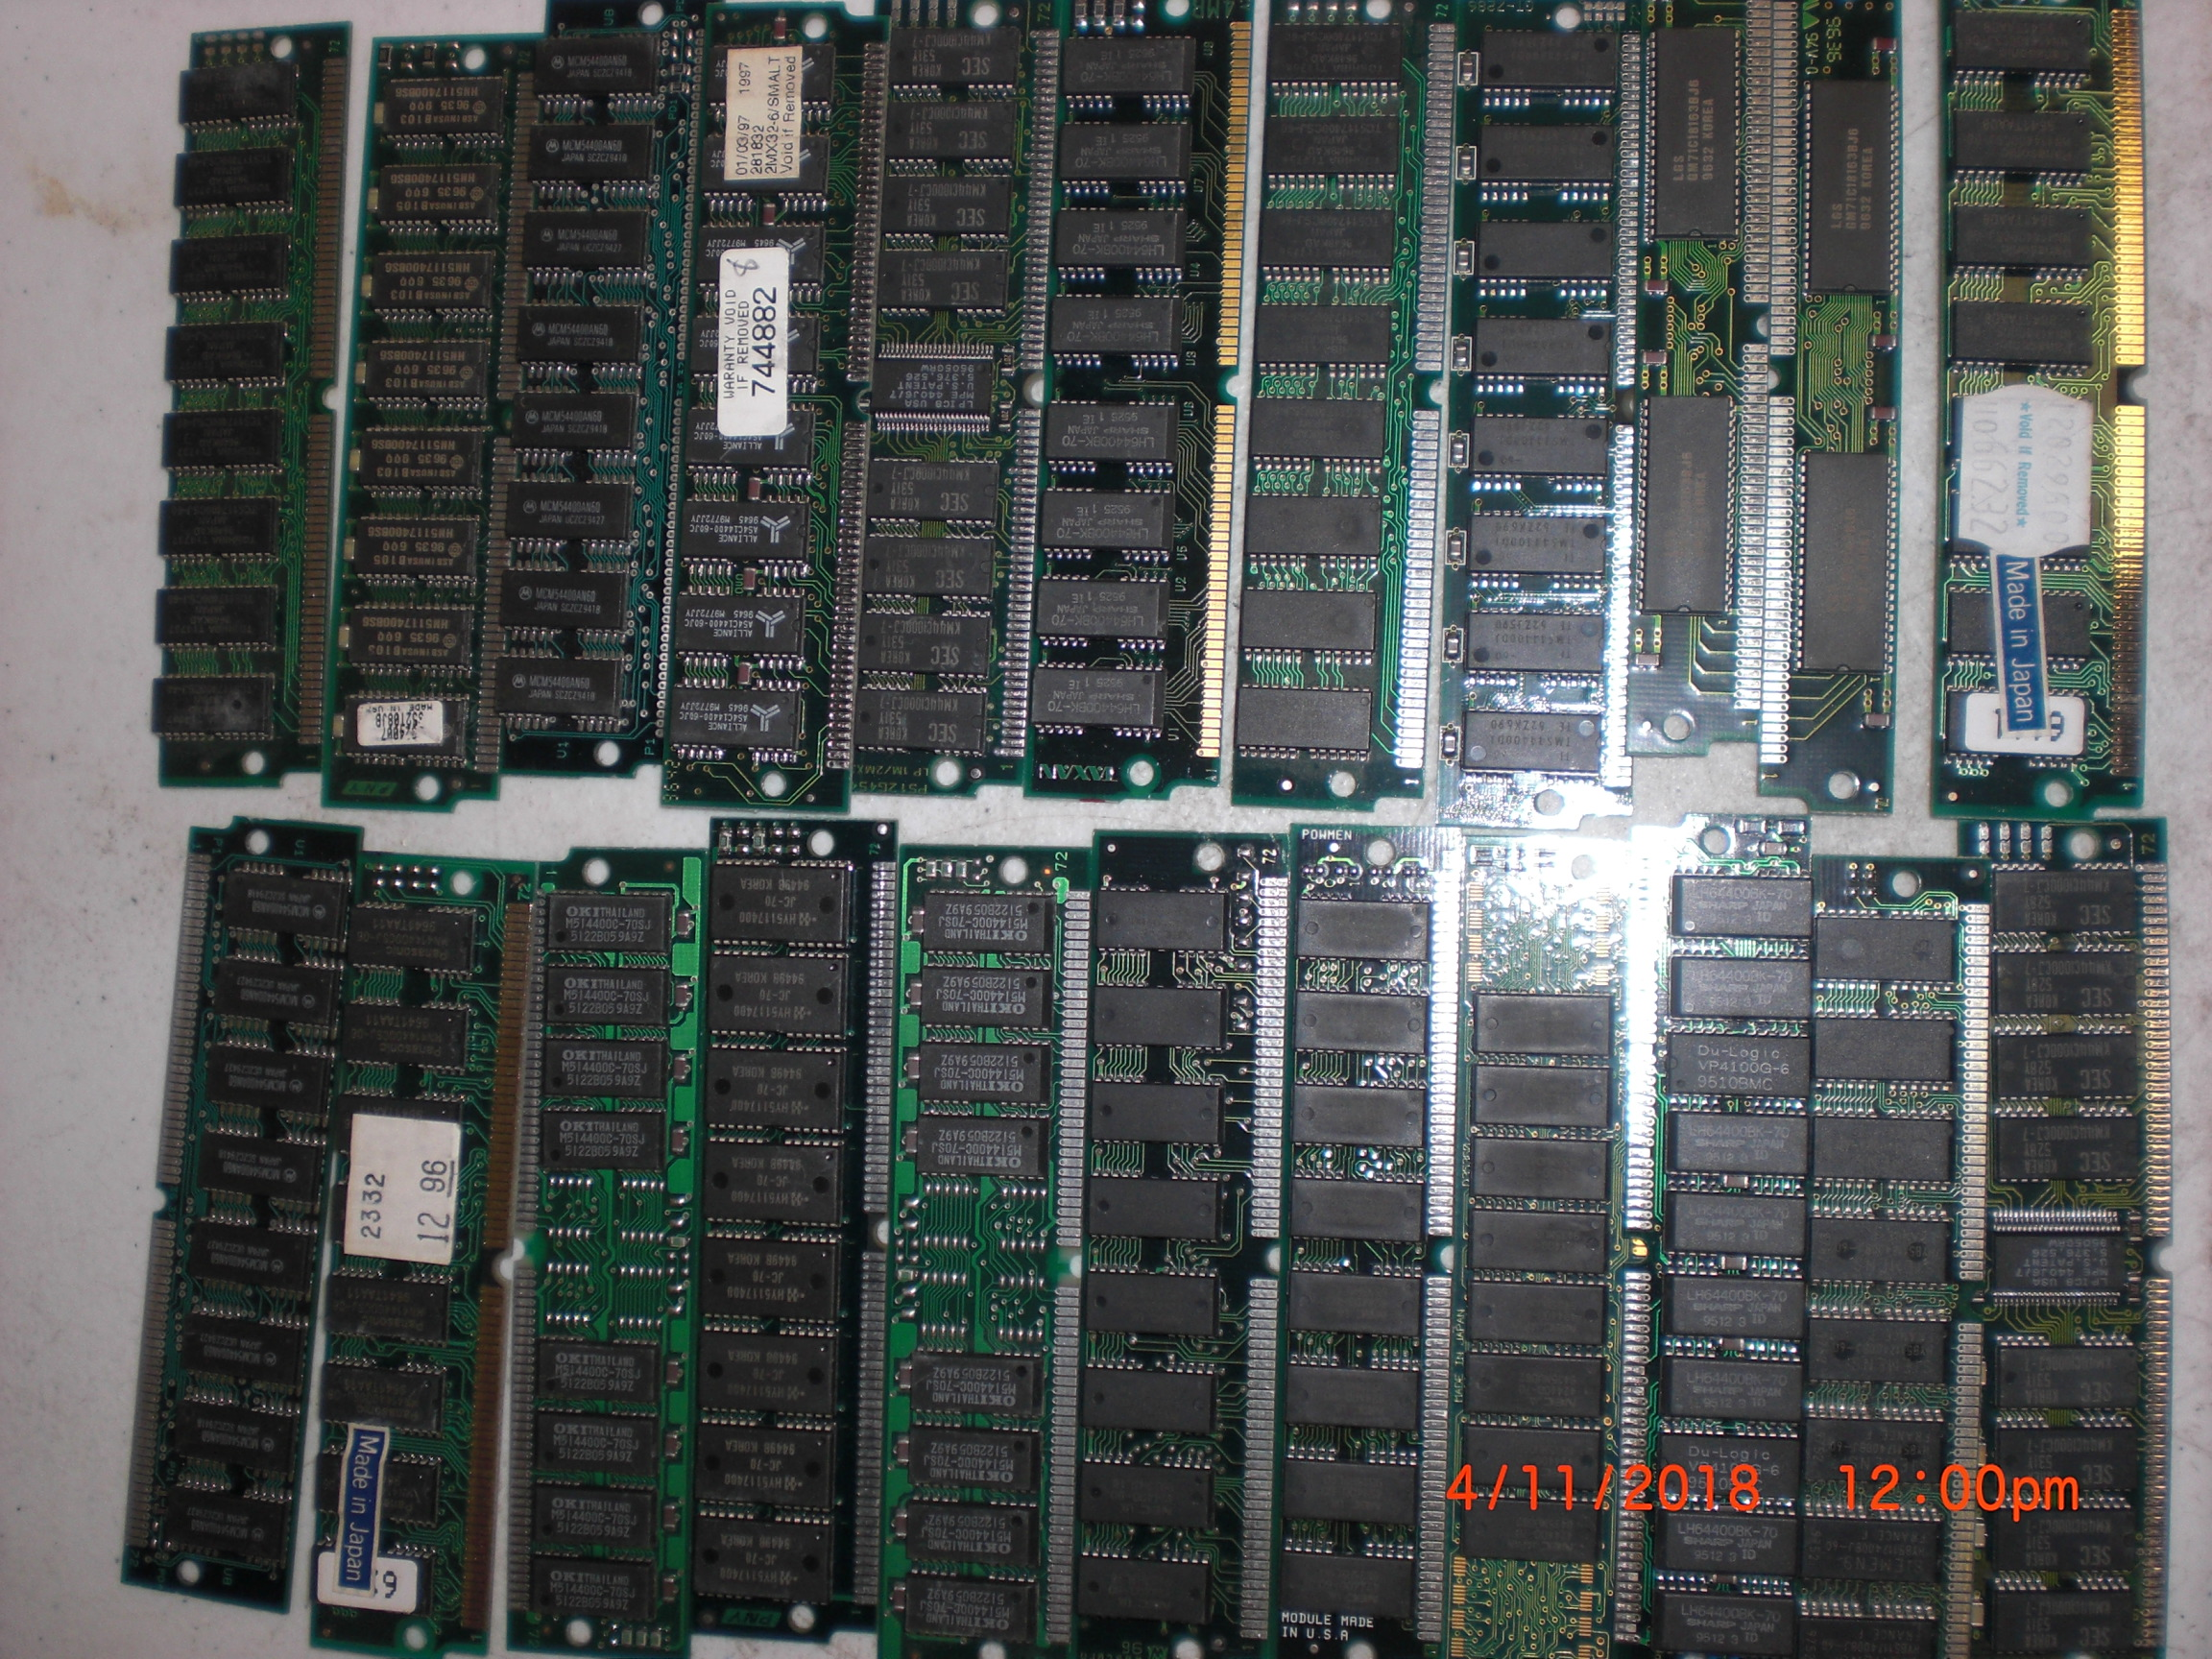 Computer Accessory KENSINGTON RAM-22 lot of 22 RAM sticks assorted MB